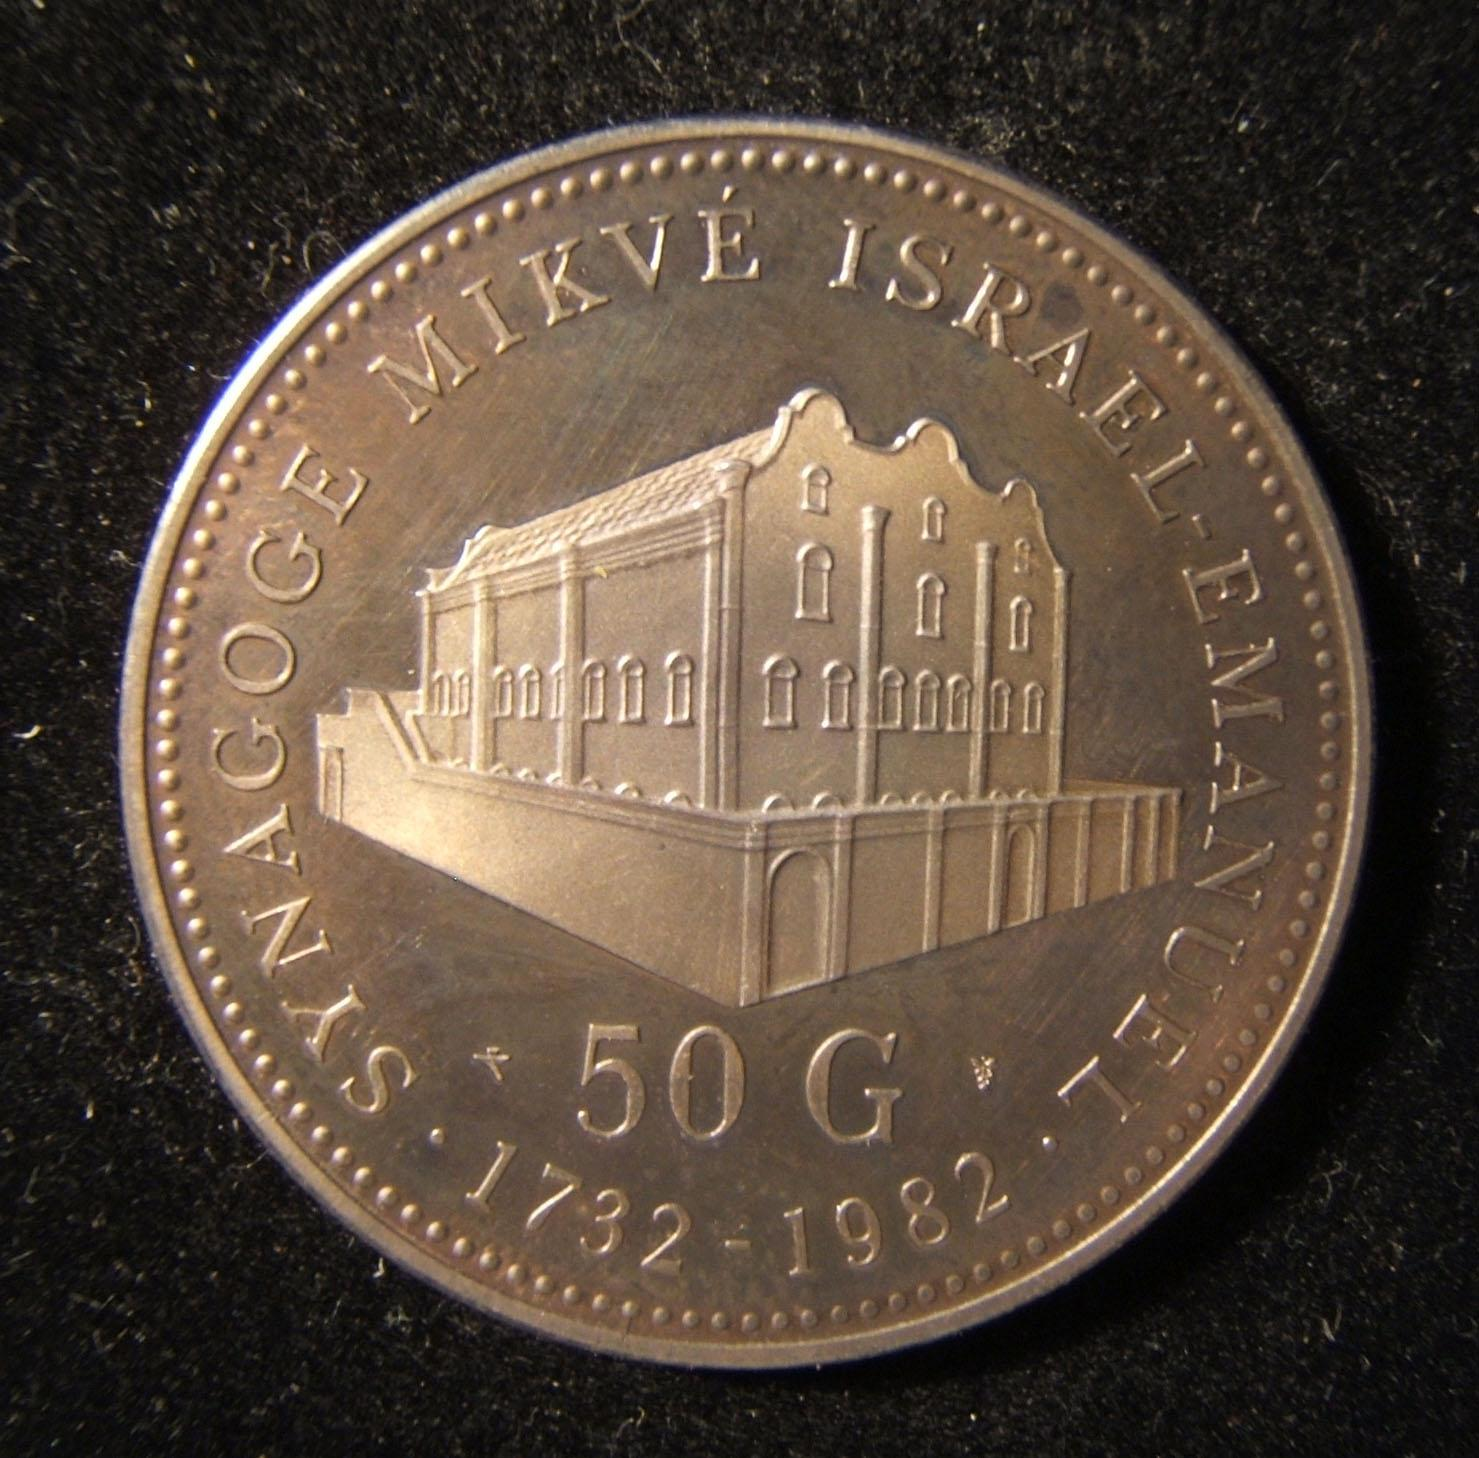 Netherlands Antilles: Mikve Israel Synagogue 250th anniv. coin, 1982